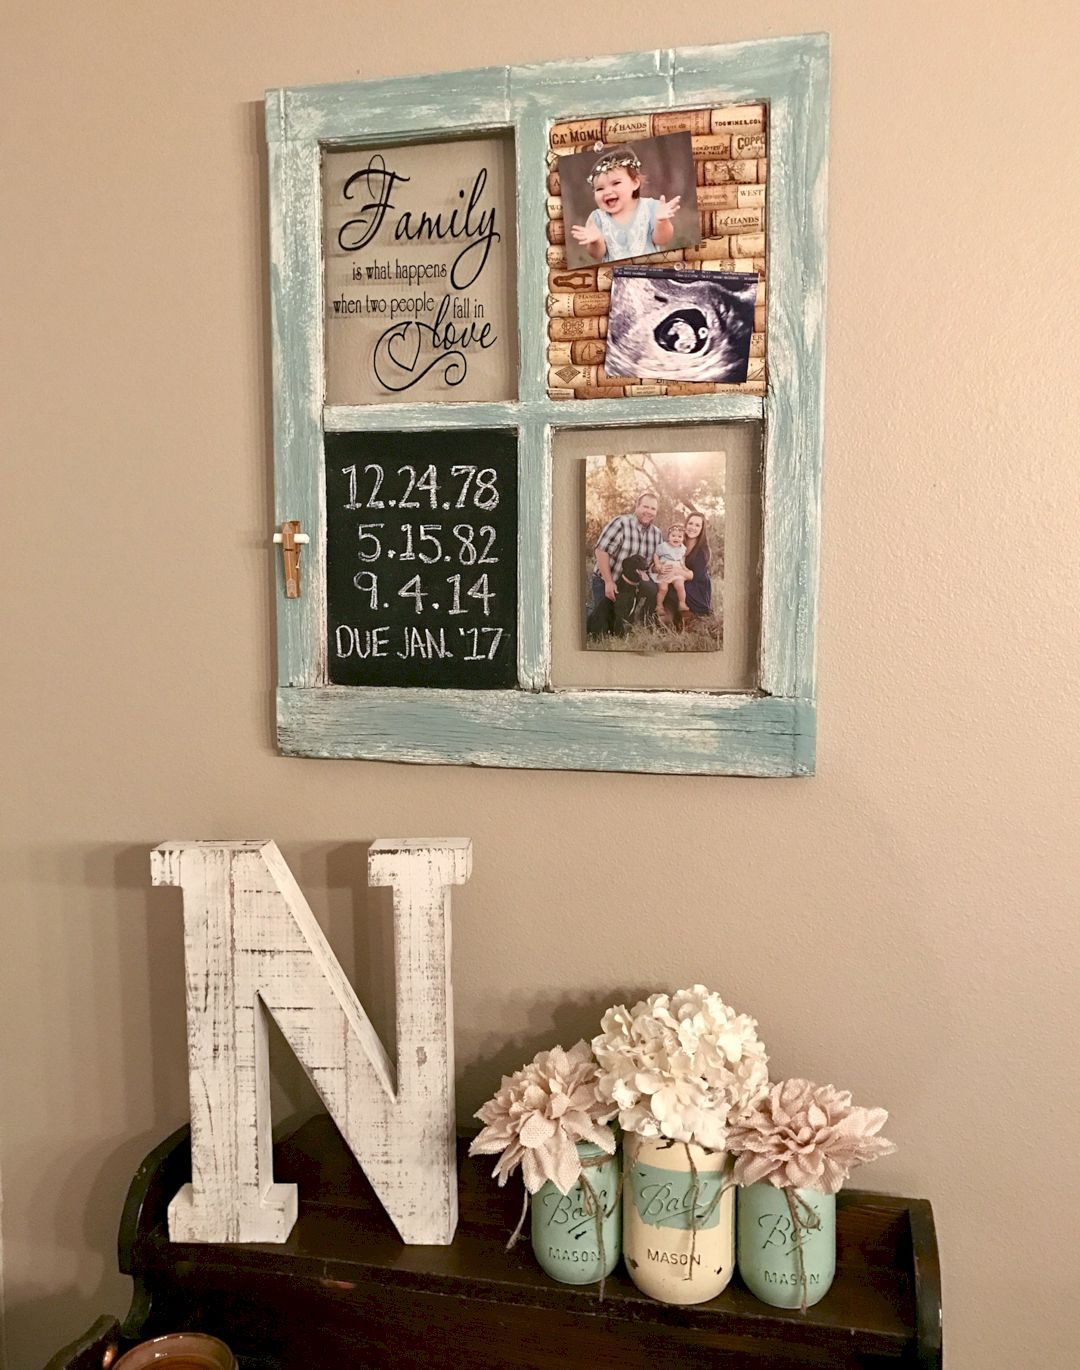 DIY Rustic Wall Décor Ideas for a Countrysidethemed Room